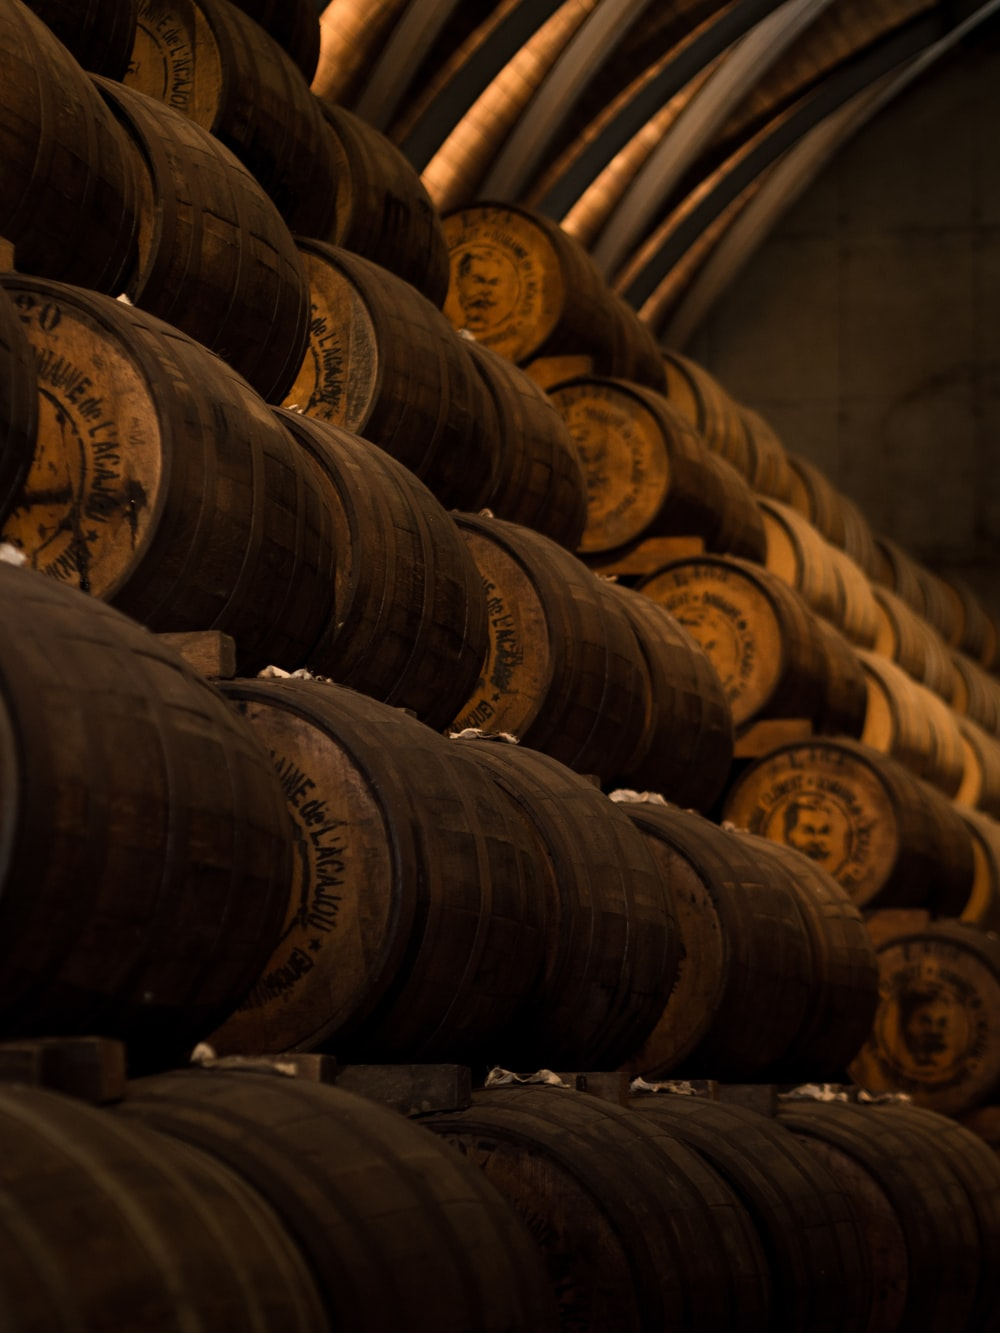 low light photography of pile of barrels